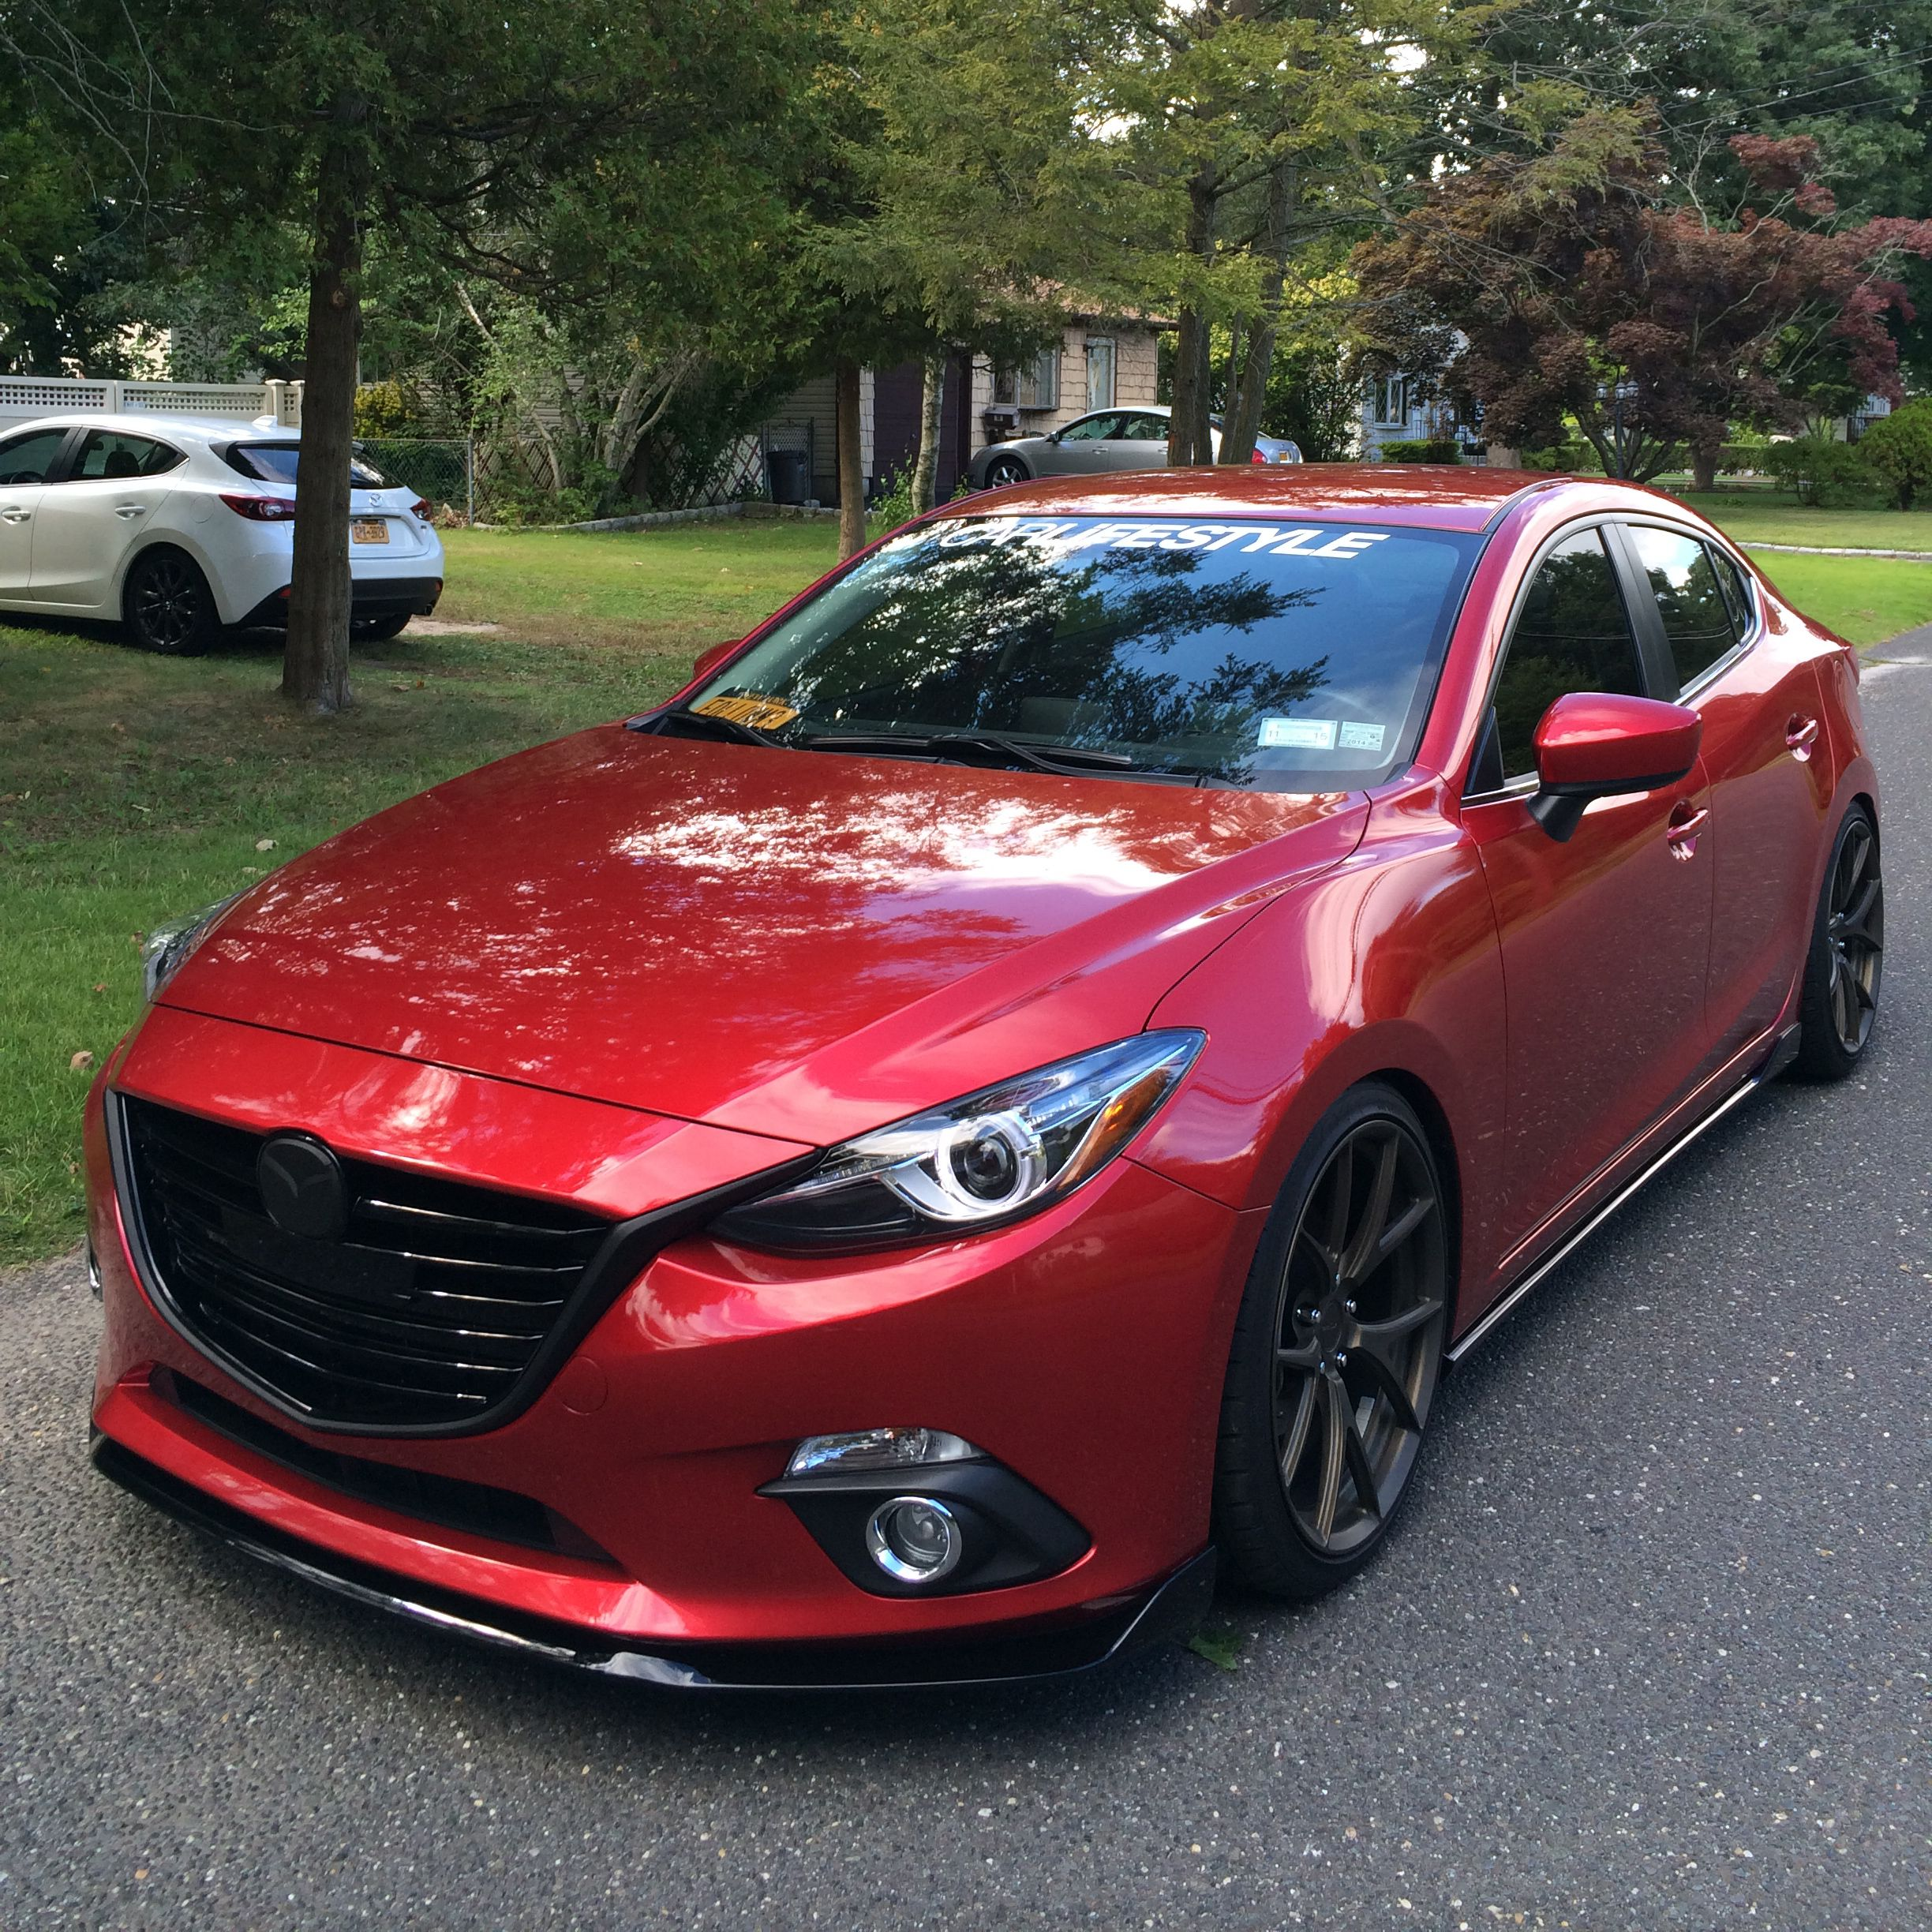 Mazda 3 Forum >> 2004 To 2016 Mazda 3 Forum And Mazdaspeed 3 Forums View Single